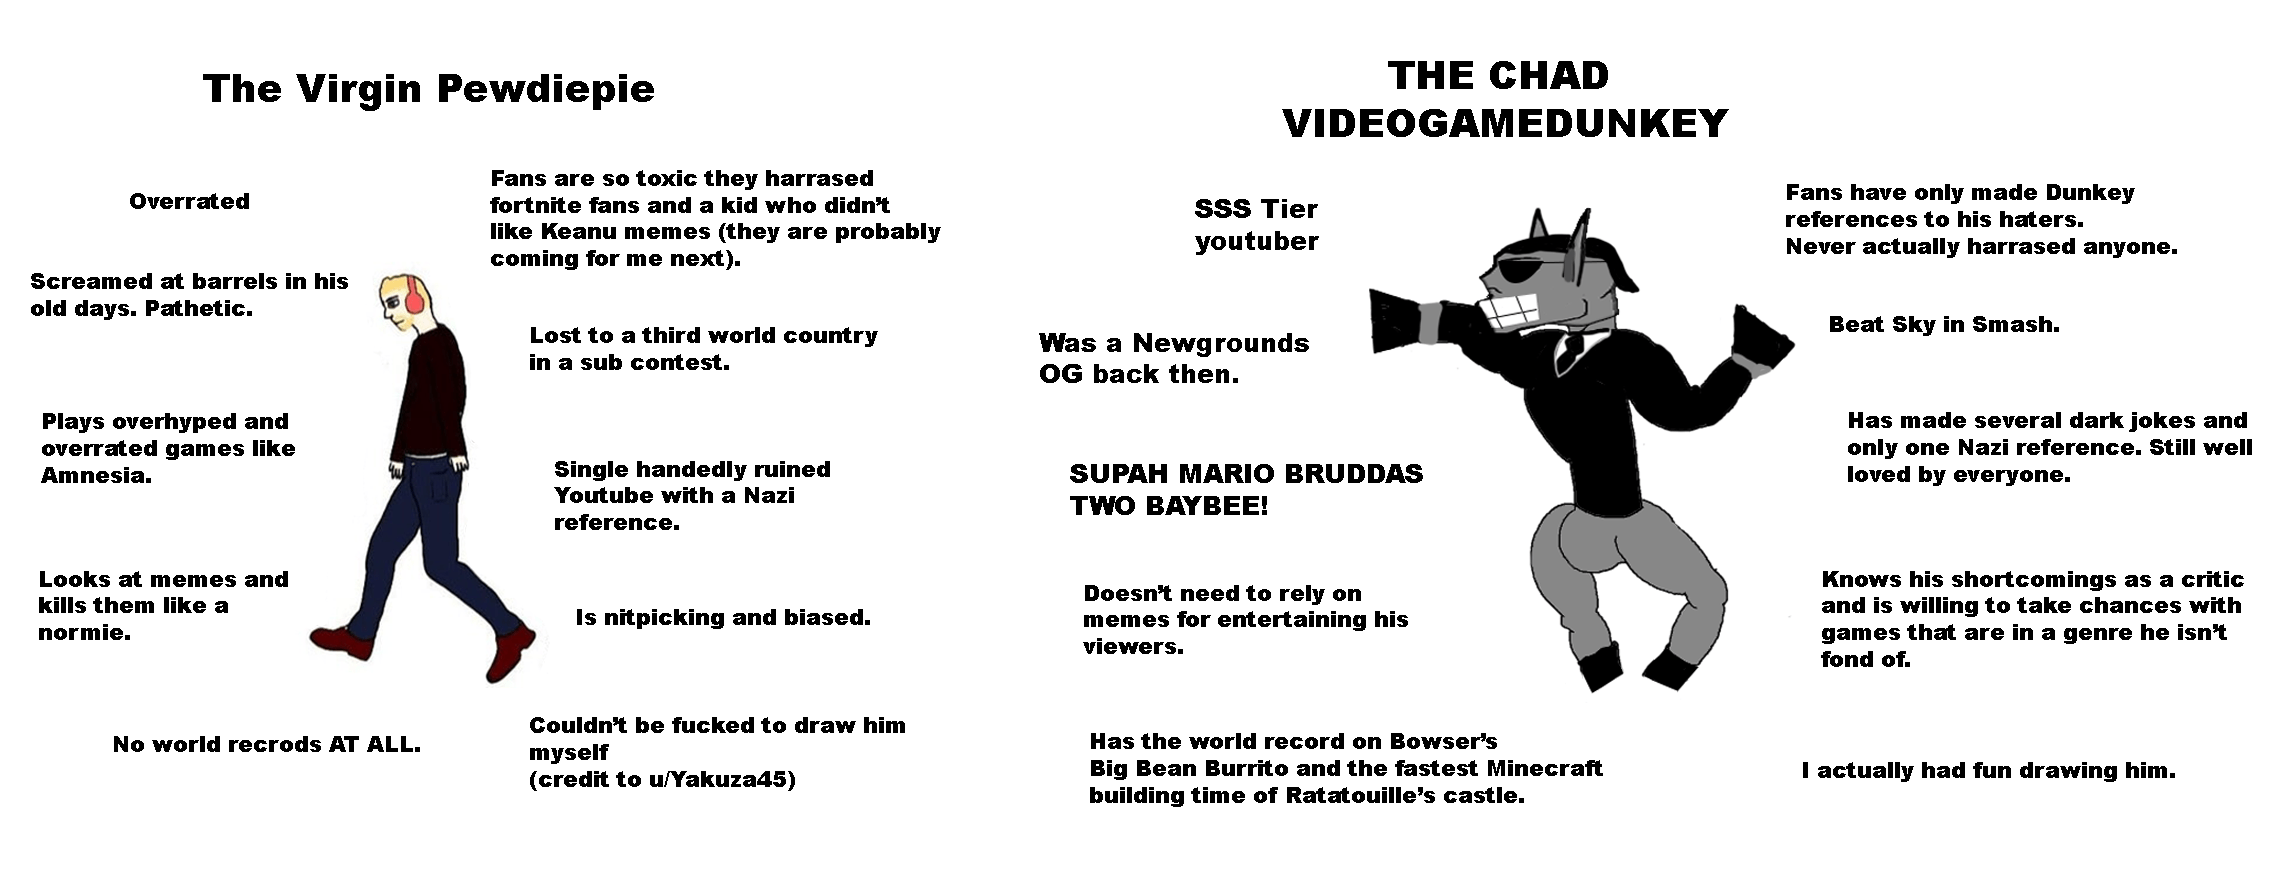 The Virgin Pew Pie Vs The Chad Videogamedunkey